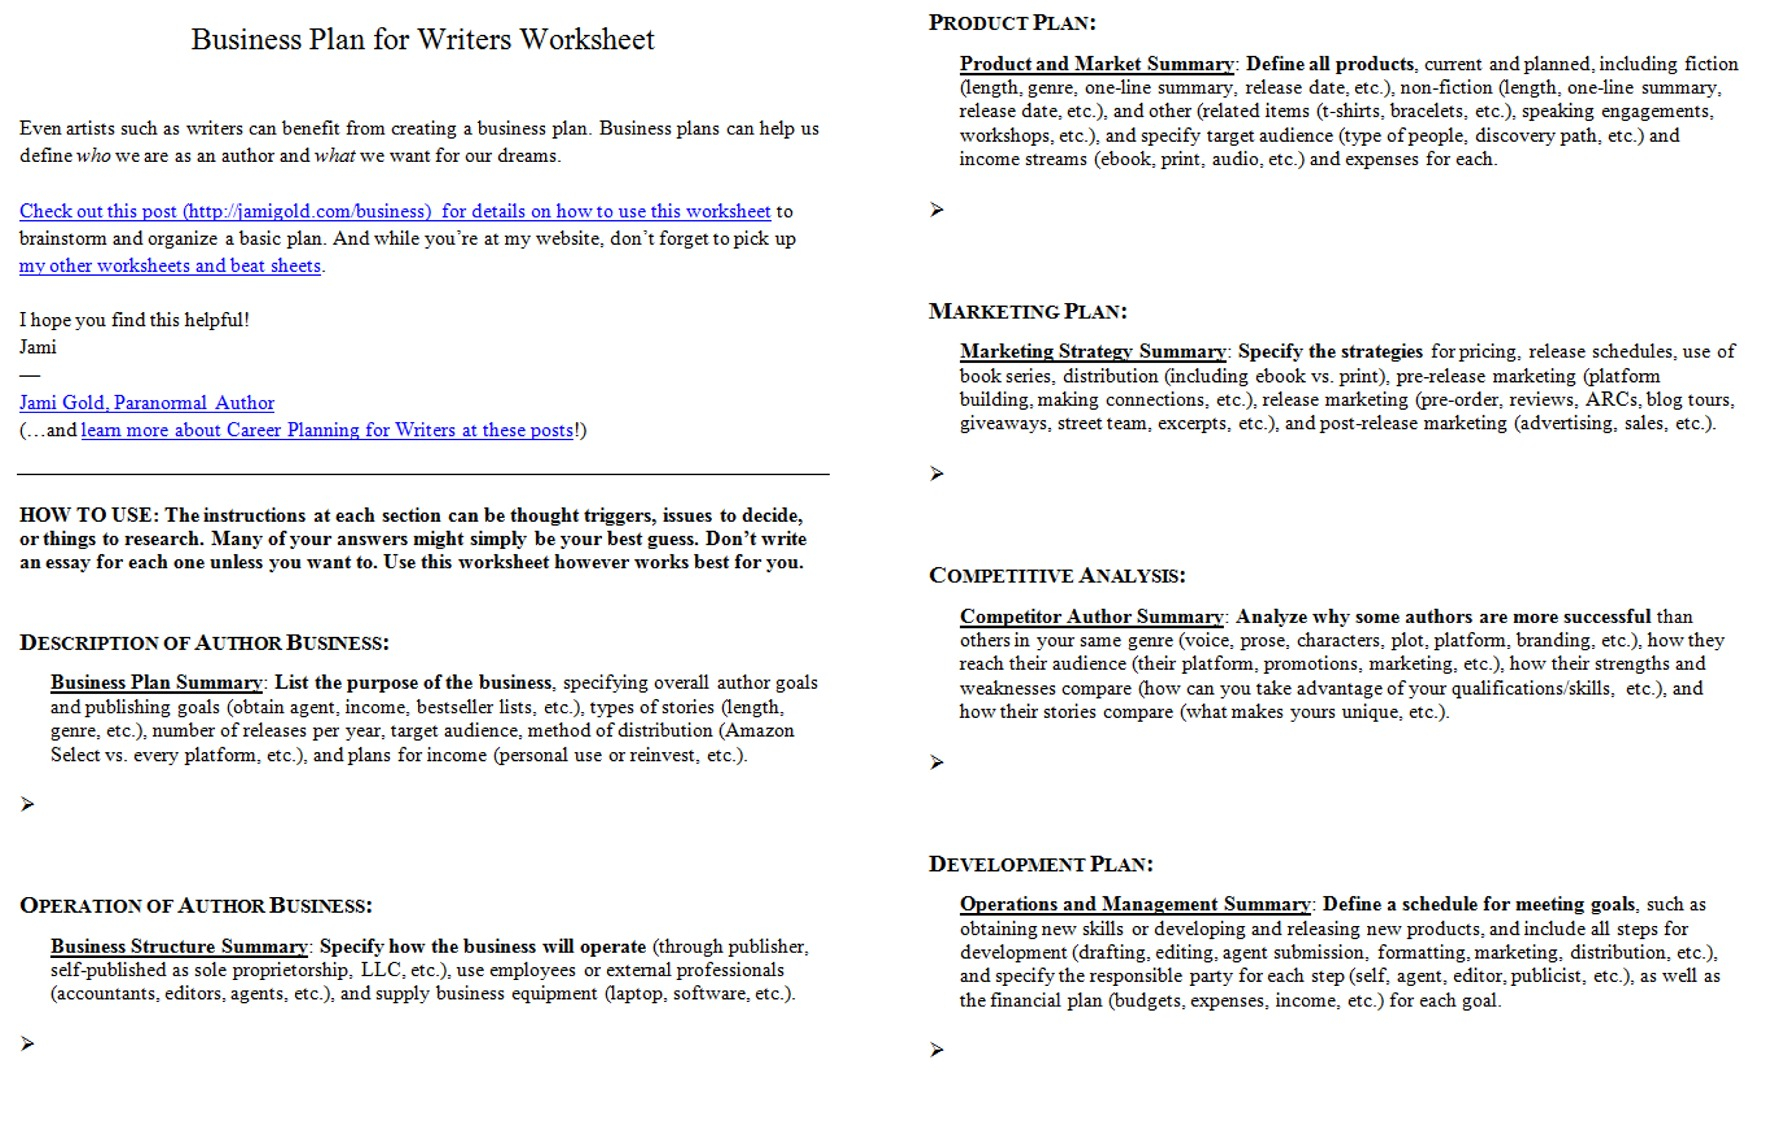 Proatmealus  Remarkable Worksheets For Writers  Jami Gold Paranormal Author With Remarkable Screen Shot Of Both Pages Of The Business Plan For Writers Worksheet With Cool Math Activities Worksheets Also Maths Th Grade Worksheet In Addition Free Math Worksheet For Kindergarten And Exclamatory Sentences Worksheets As Well As Solid Liquid Gases Worksheets Additionally Free Printable Worksheet For Class  From Jamigoldcom With Proatmealus  Remarkable Worksheets For Writers  Jami Gold Paranormal Author With Cool Screen Shot Of Both Pages Of The Business Plan For Writers Worksheet And Remarkable Math Activities Worksheets Also Maths Th Grade Worksheet In Addition Free Math Worksheet For Kindergarten From Jamigoldcom